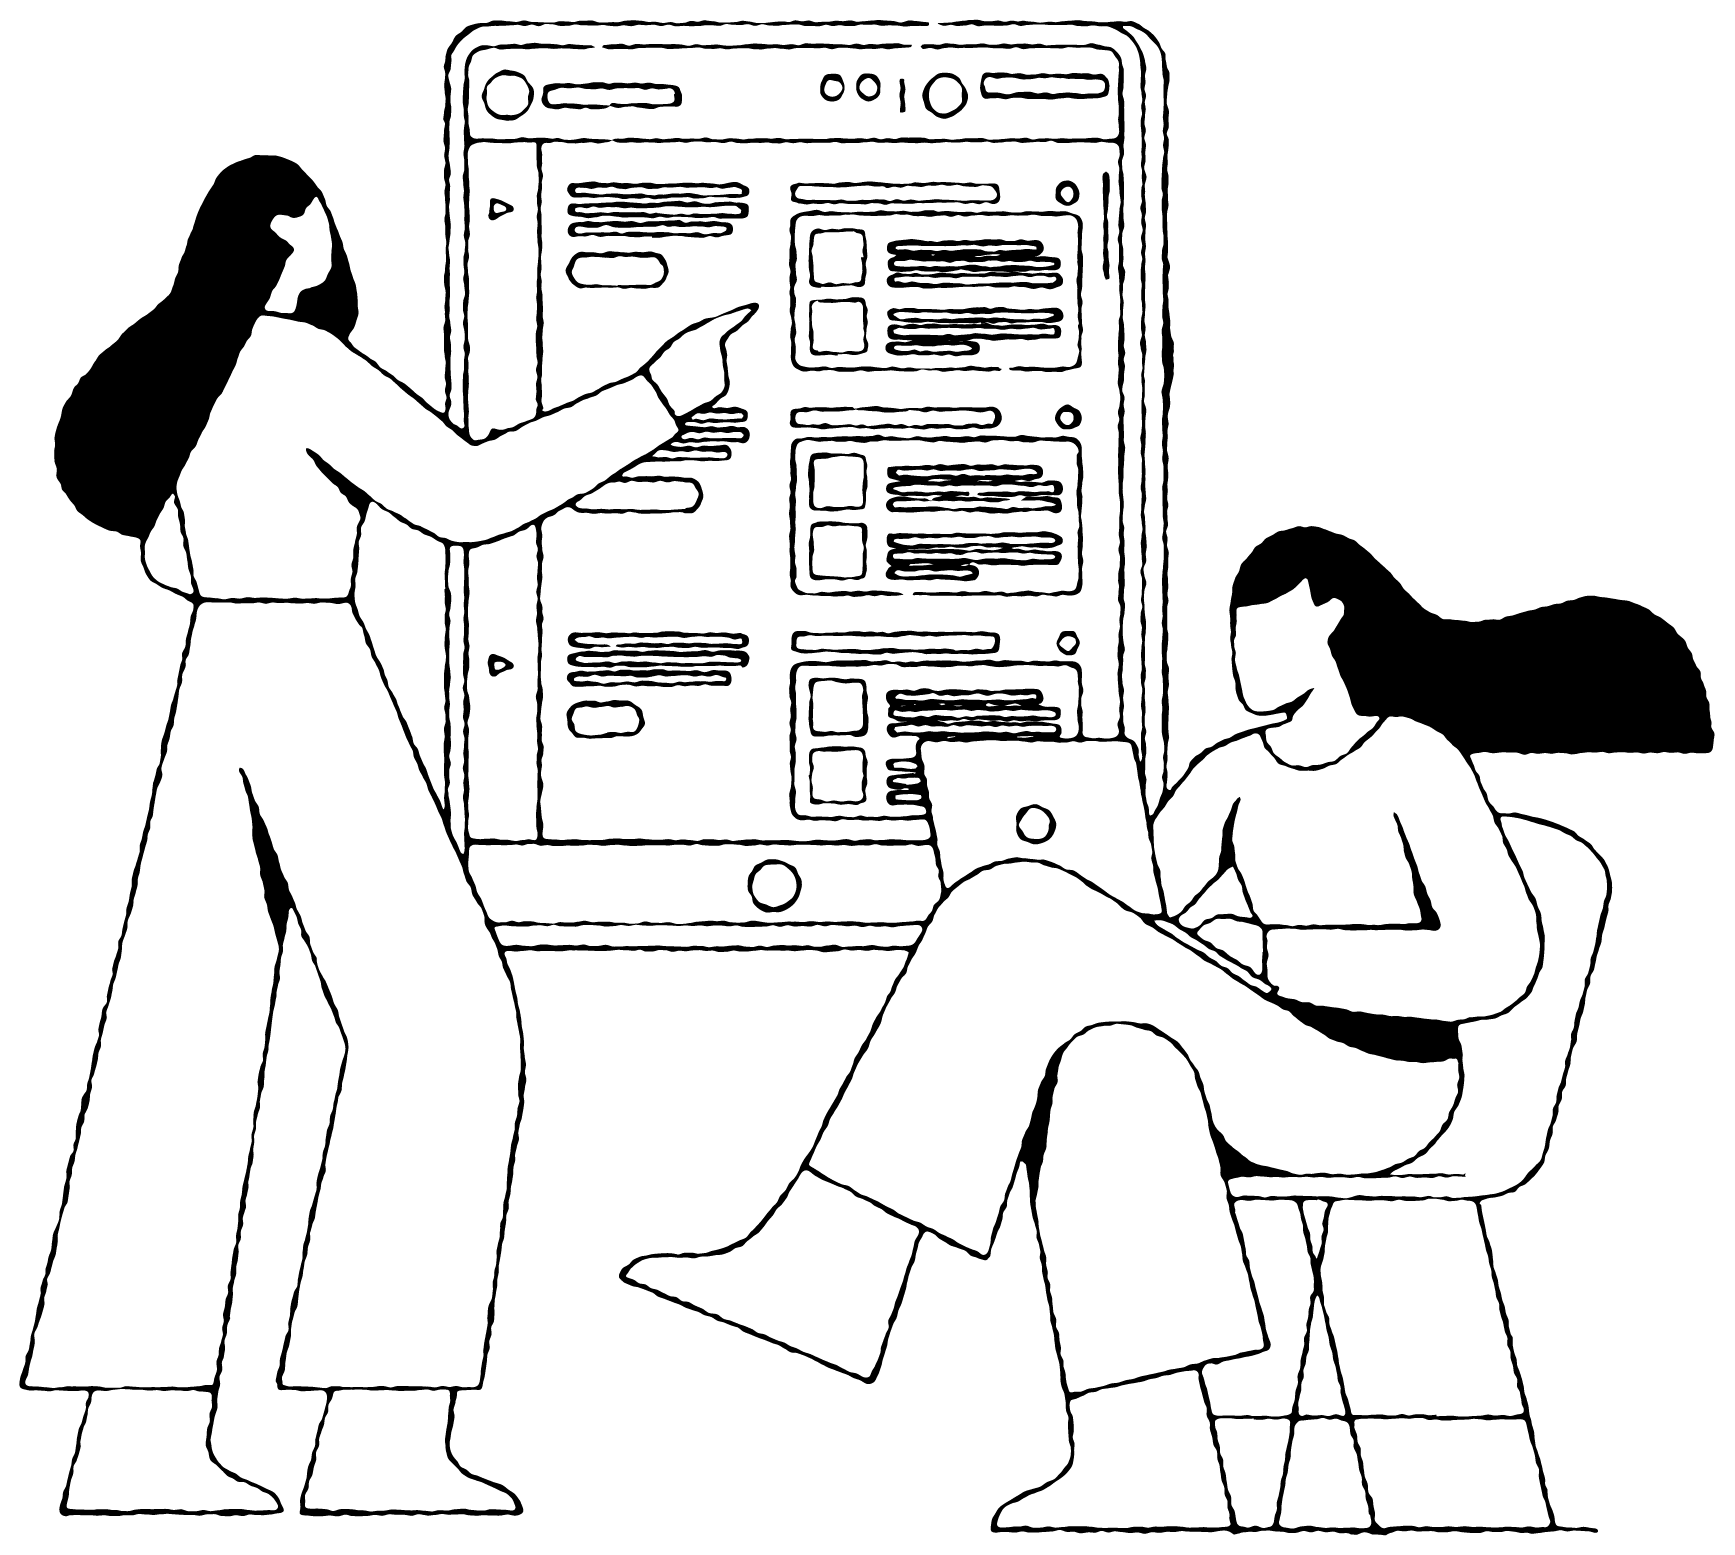 Two people pointing and looking at the same tablet screen